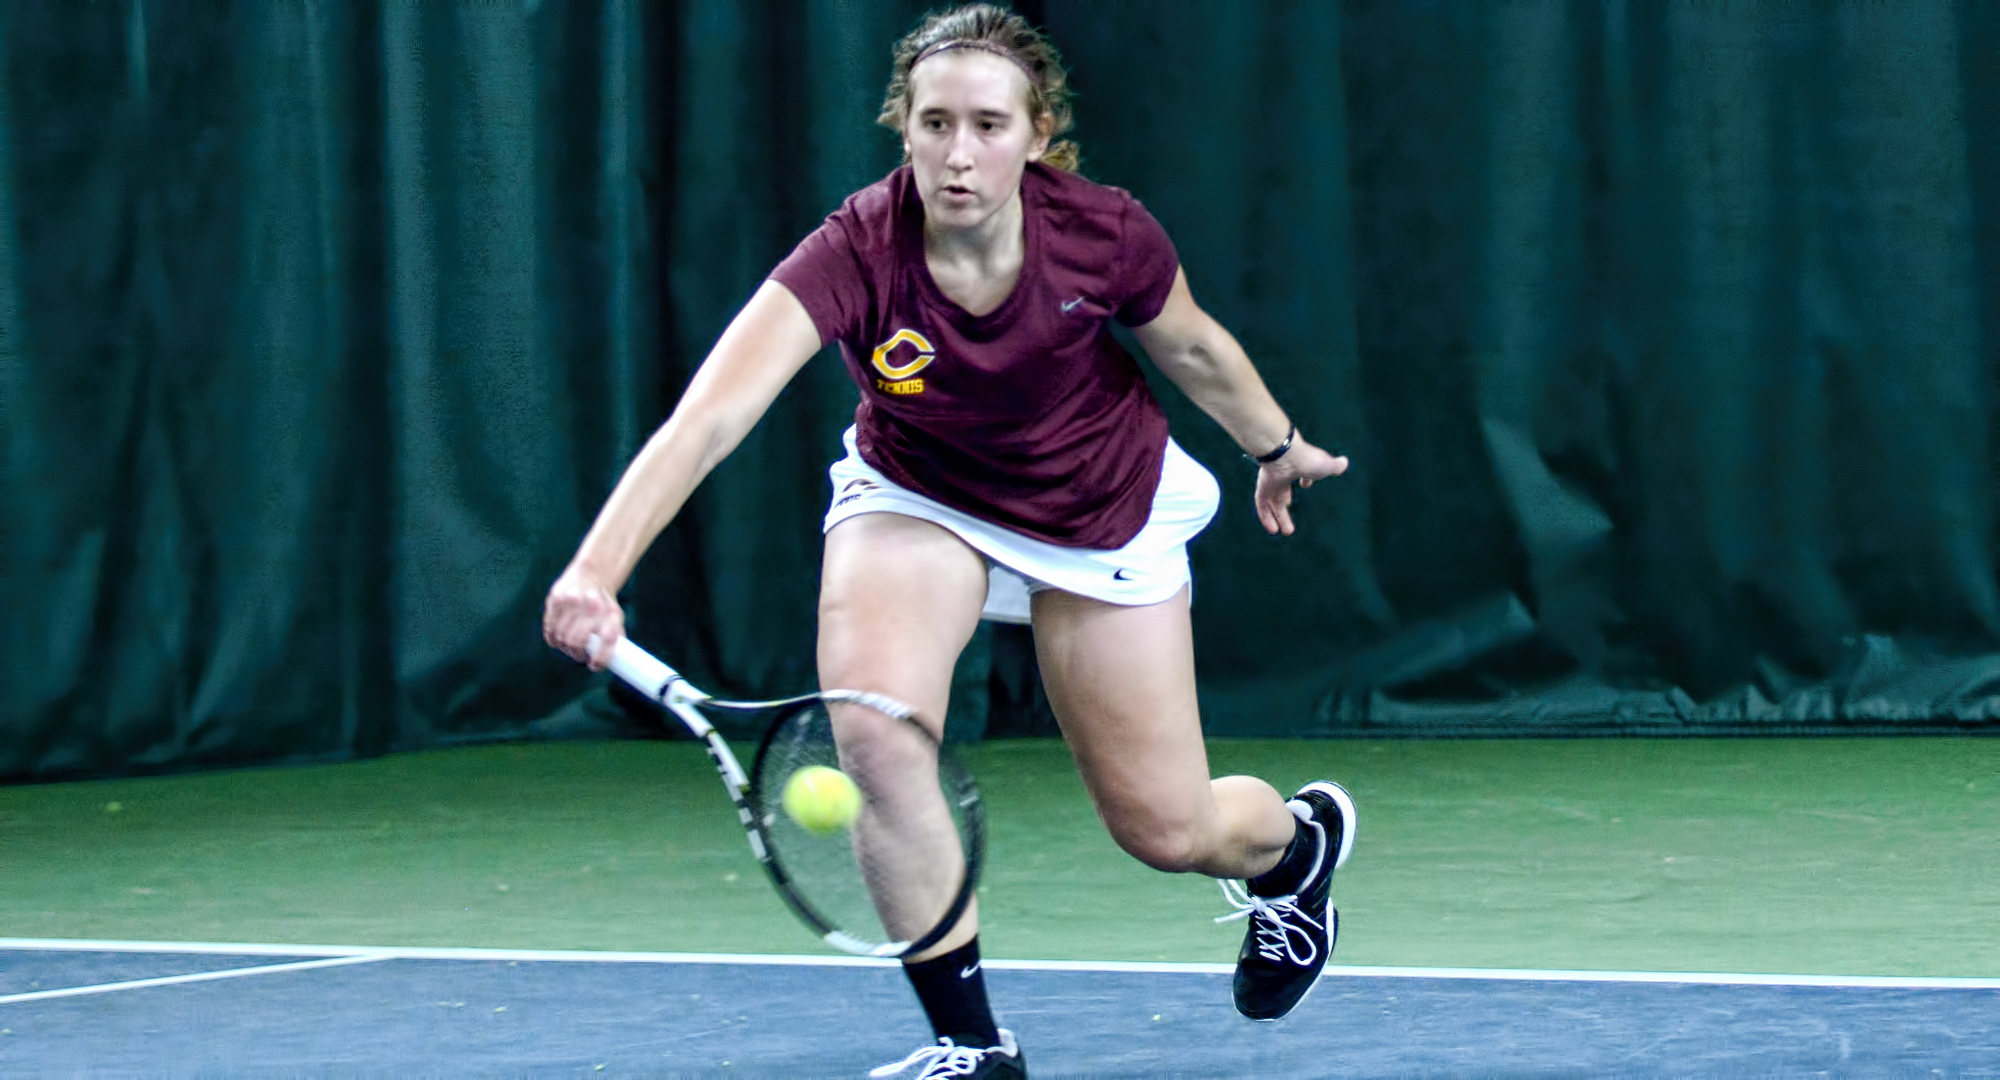 Concordia sophomore Lisa Neumann was part of the Cobber No.2 doubles team which lost a heartbreaker in the tie-breaker in their match at St. Mary's.